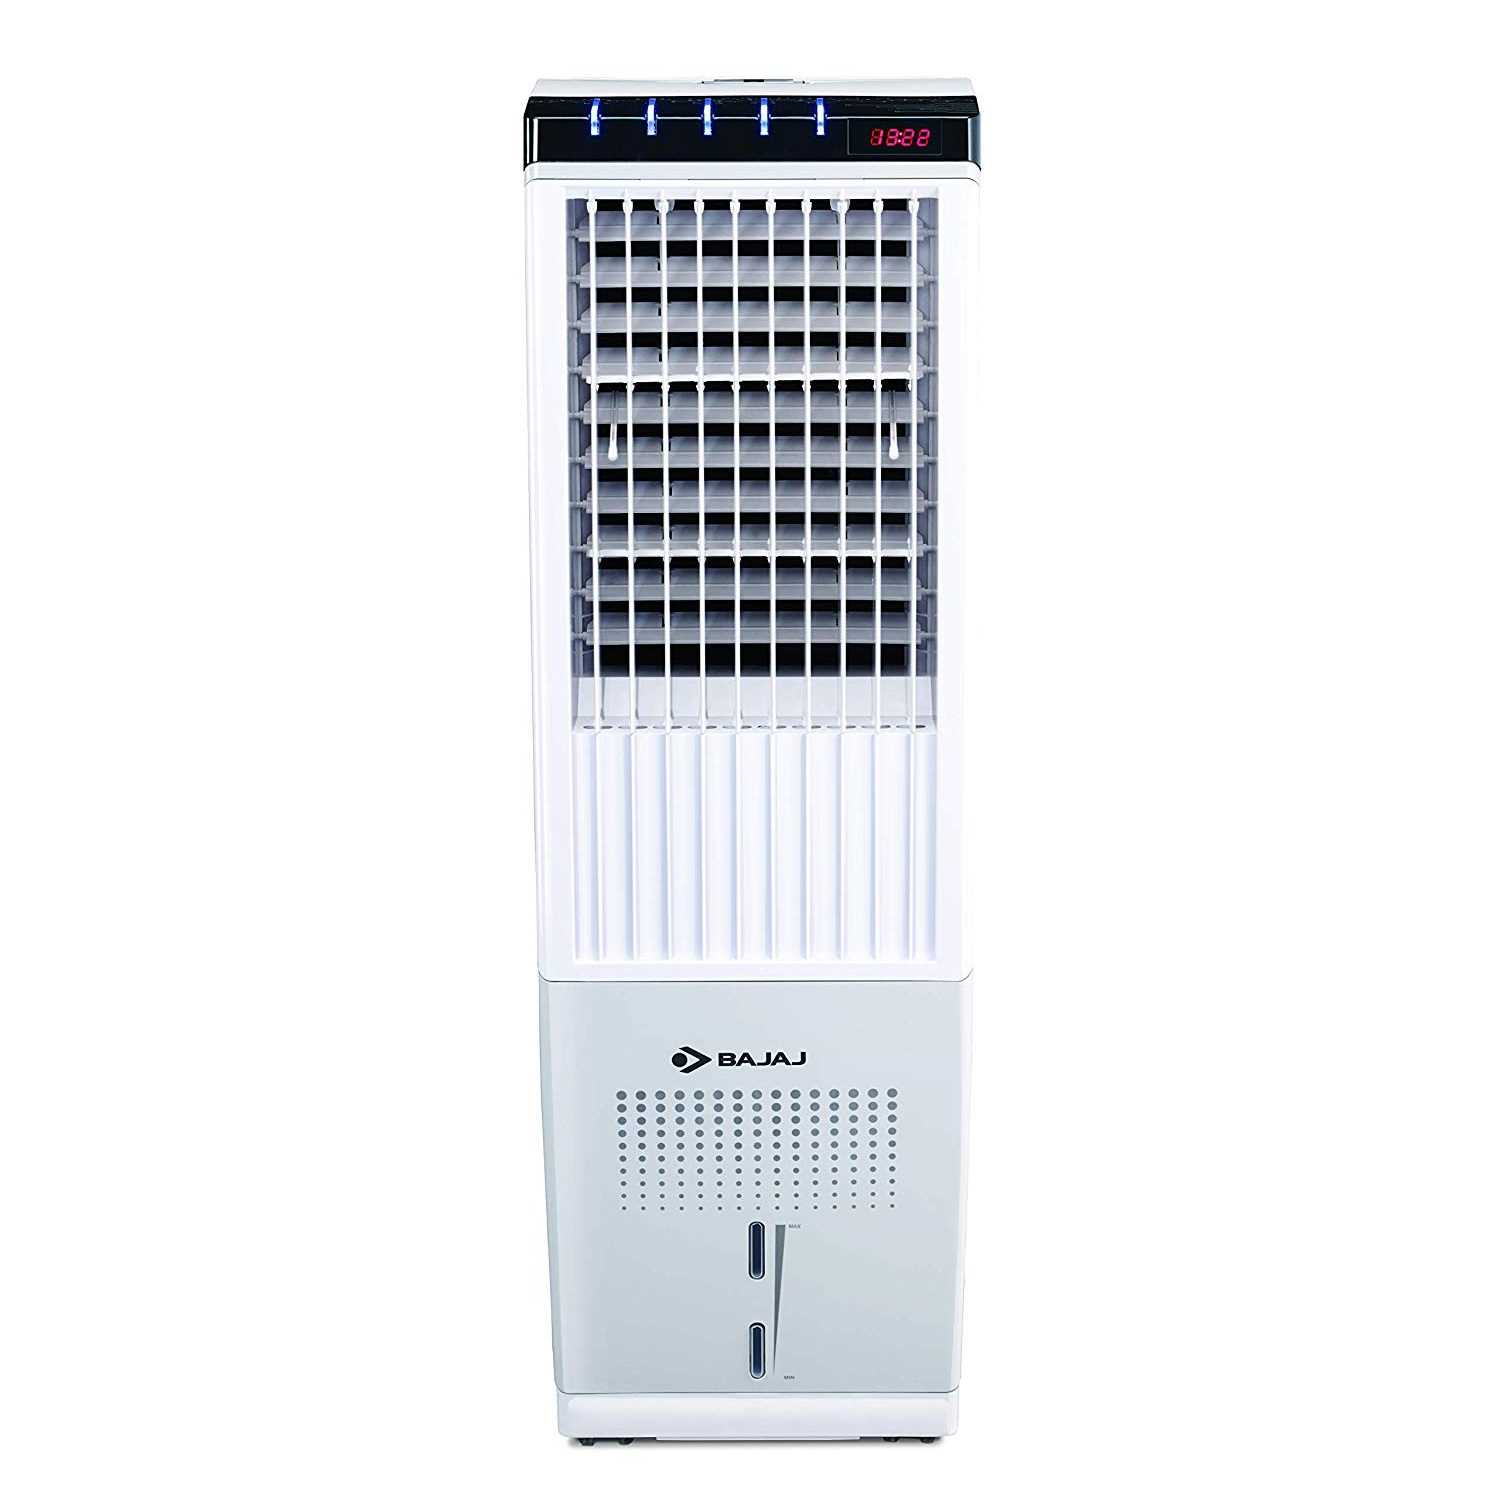 Bajaj TC-103 DLX Digital 22 Litre Air Cooler